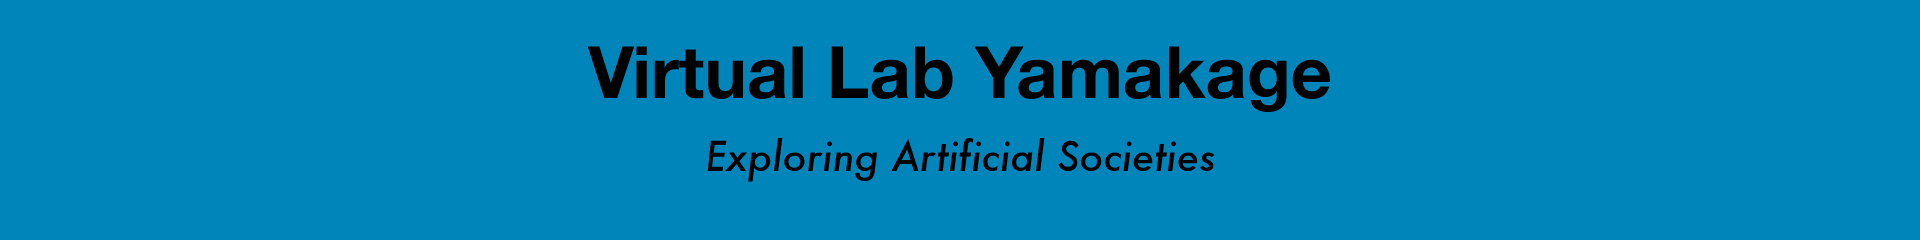 Virtual Lab Yamakage